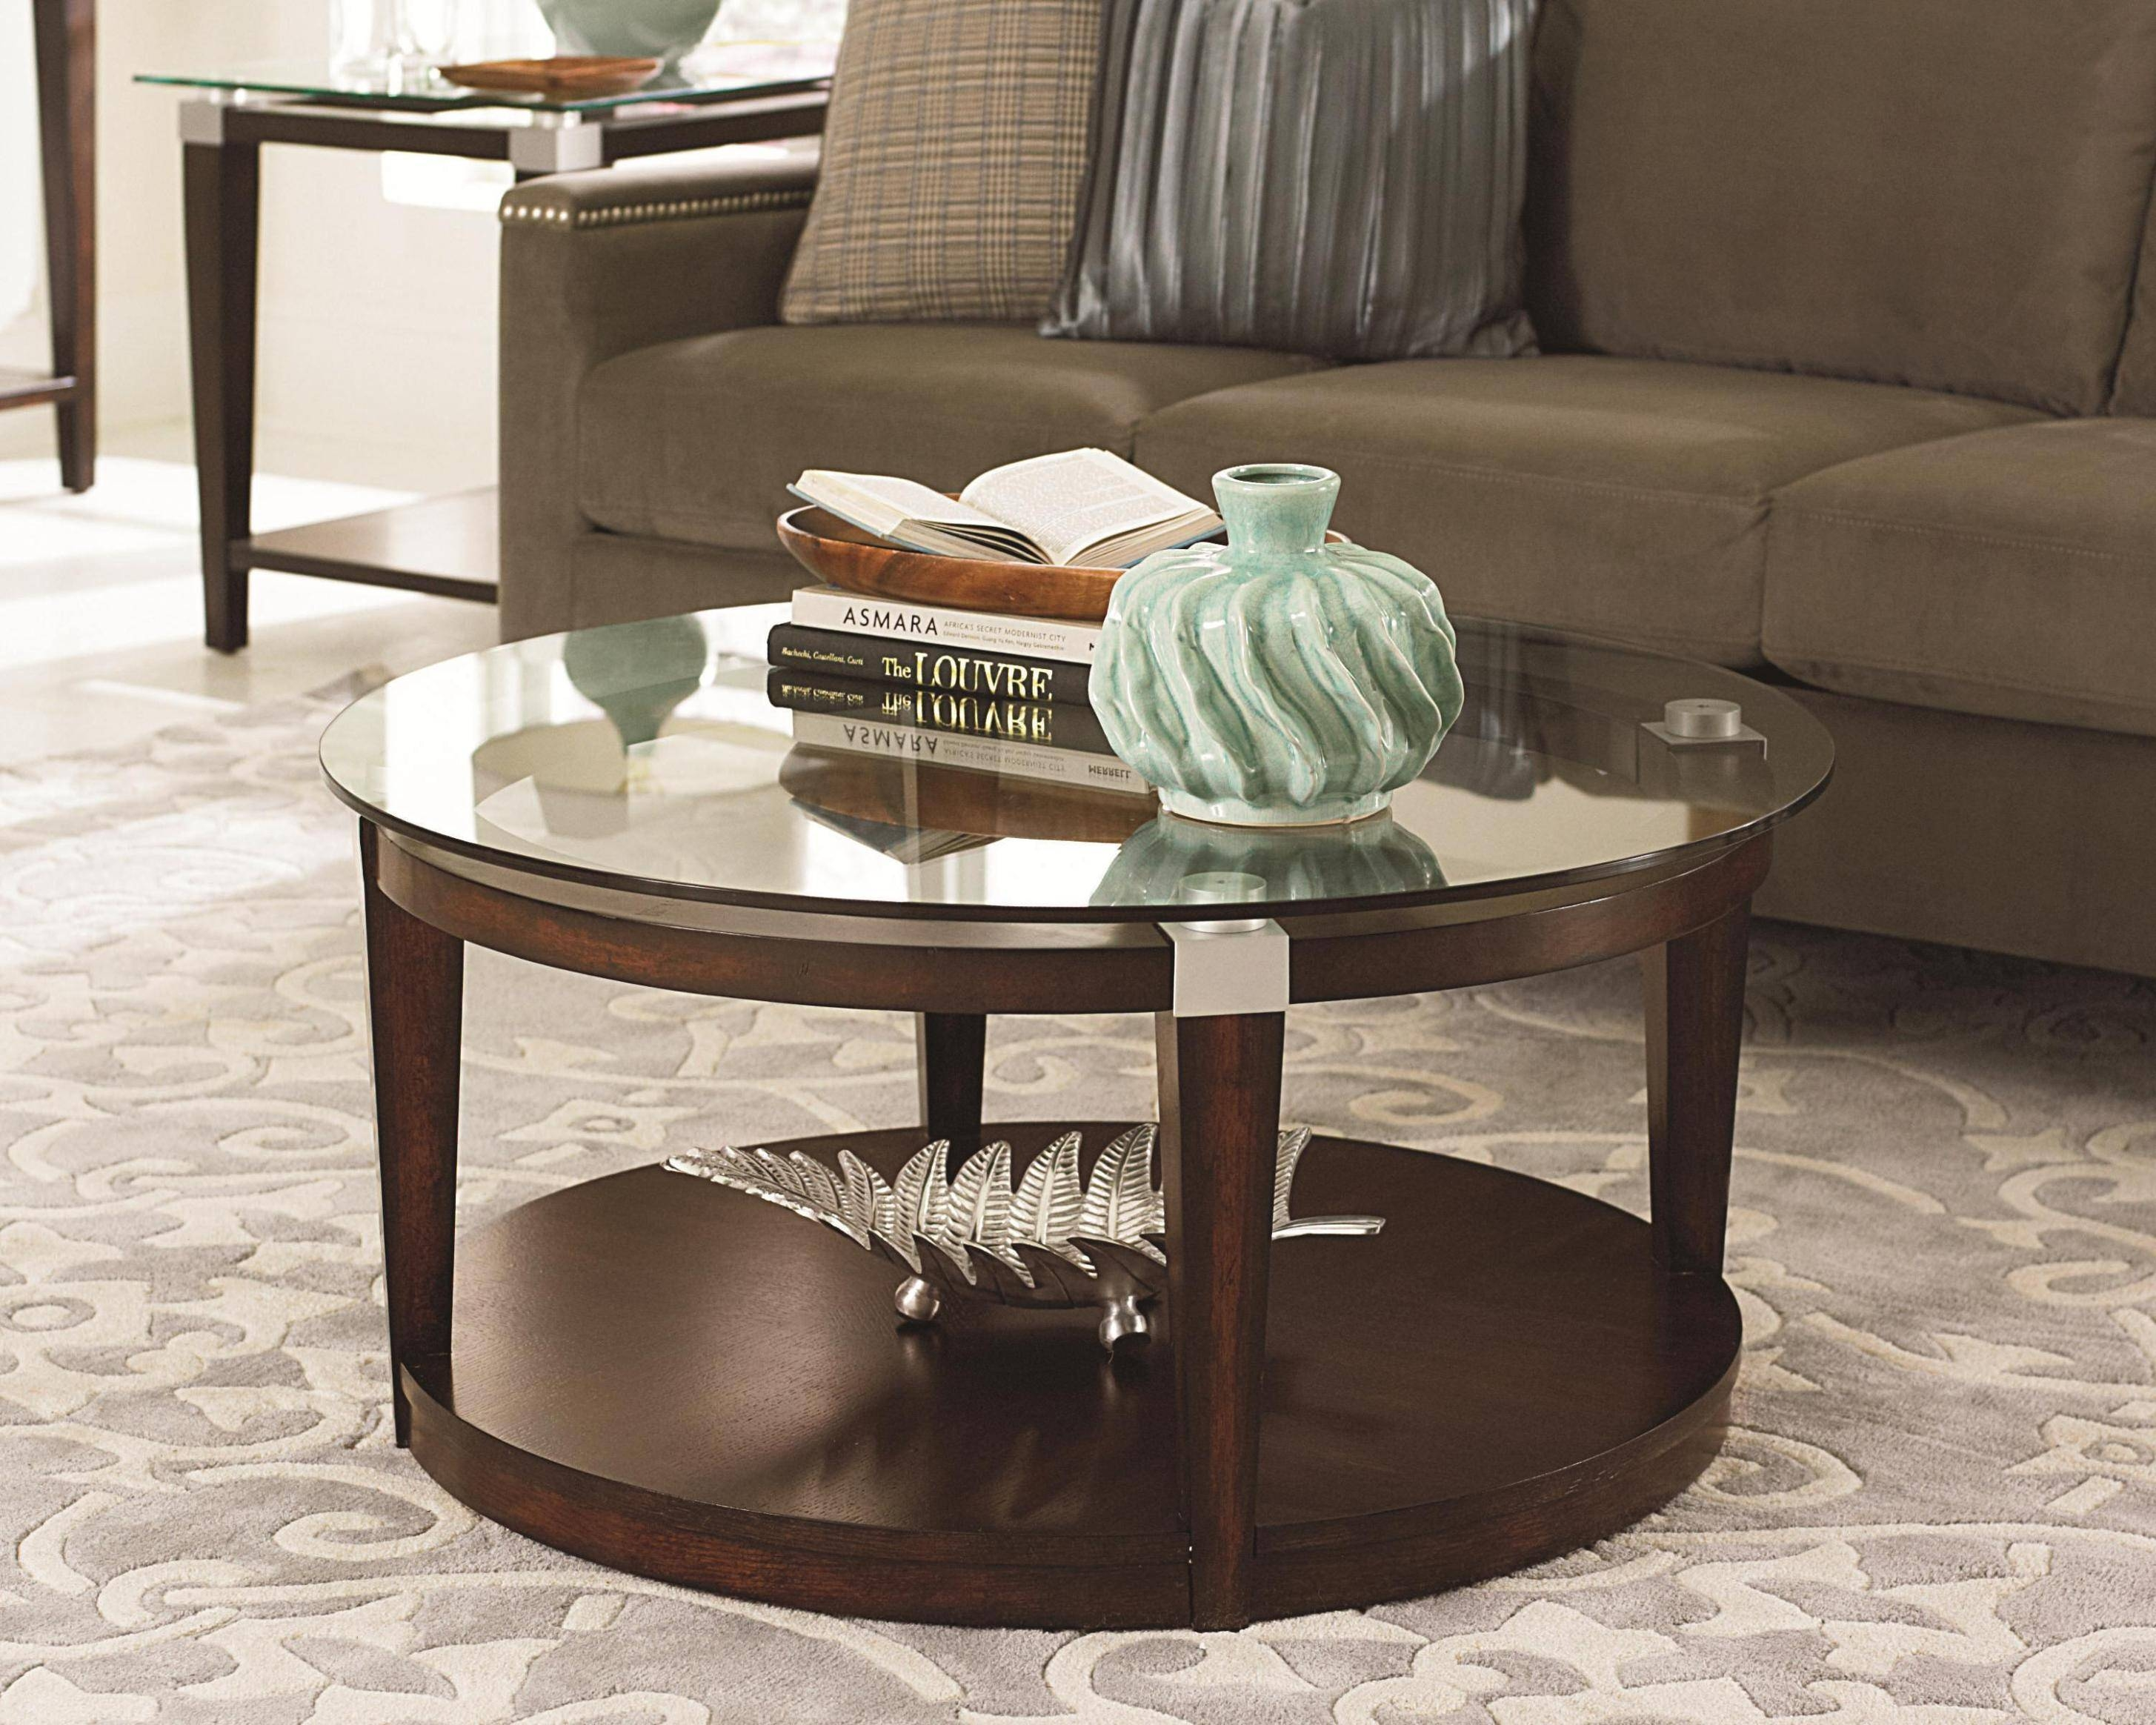 Small Circular Coffee Table Thick Round Glass Table Top, High throughout Circular Glass Coffee Tables (Image 25 of 30)